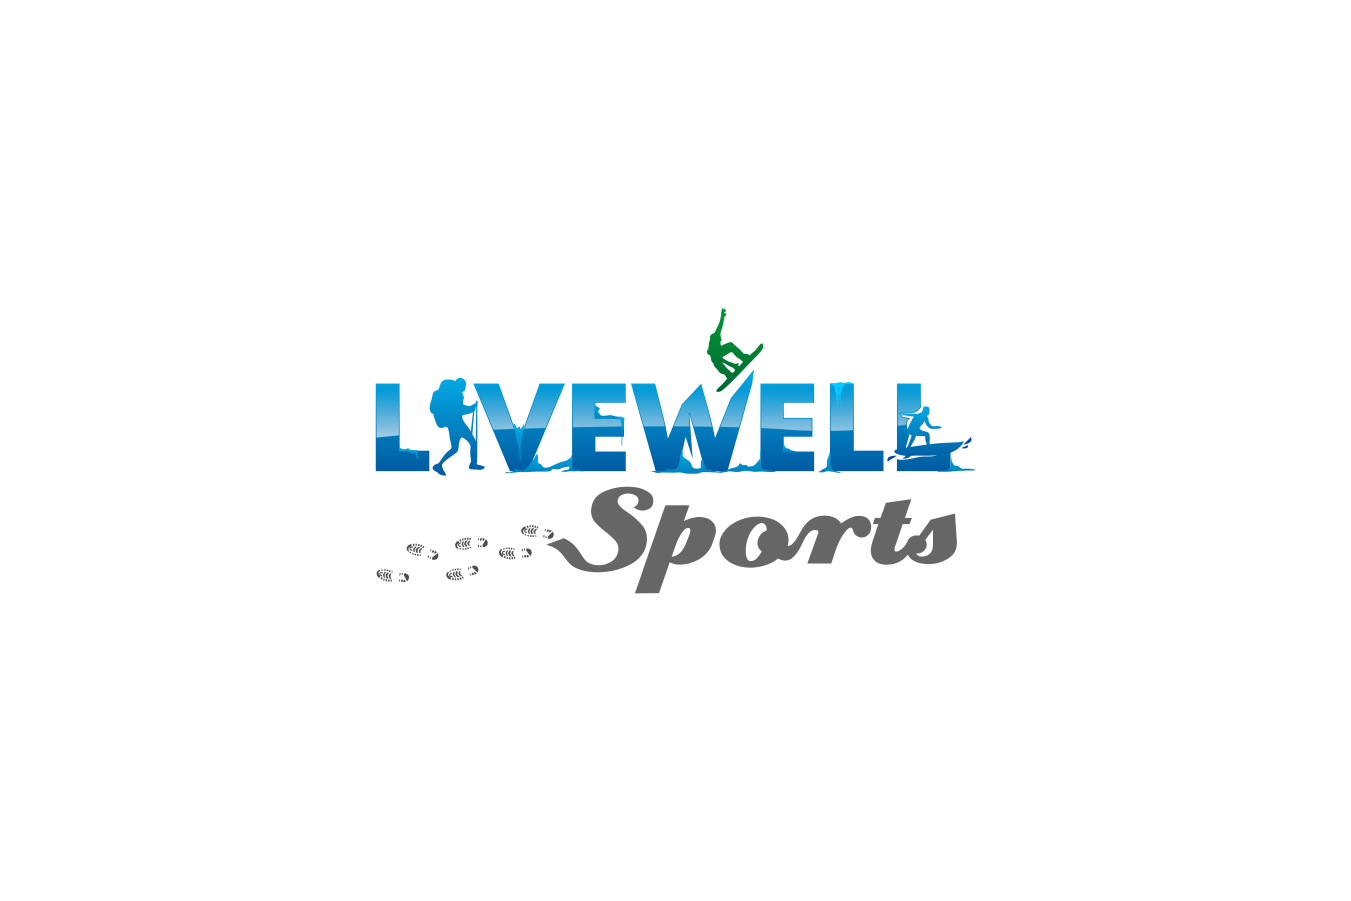 Help LiveWellSports with a new logo